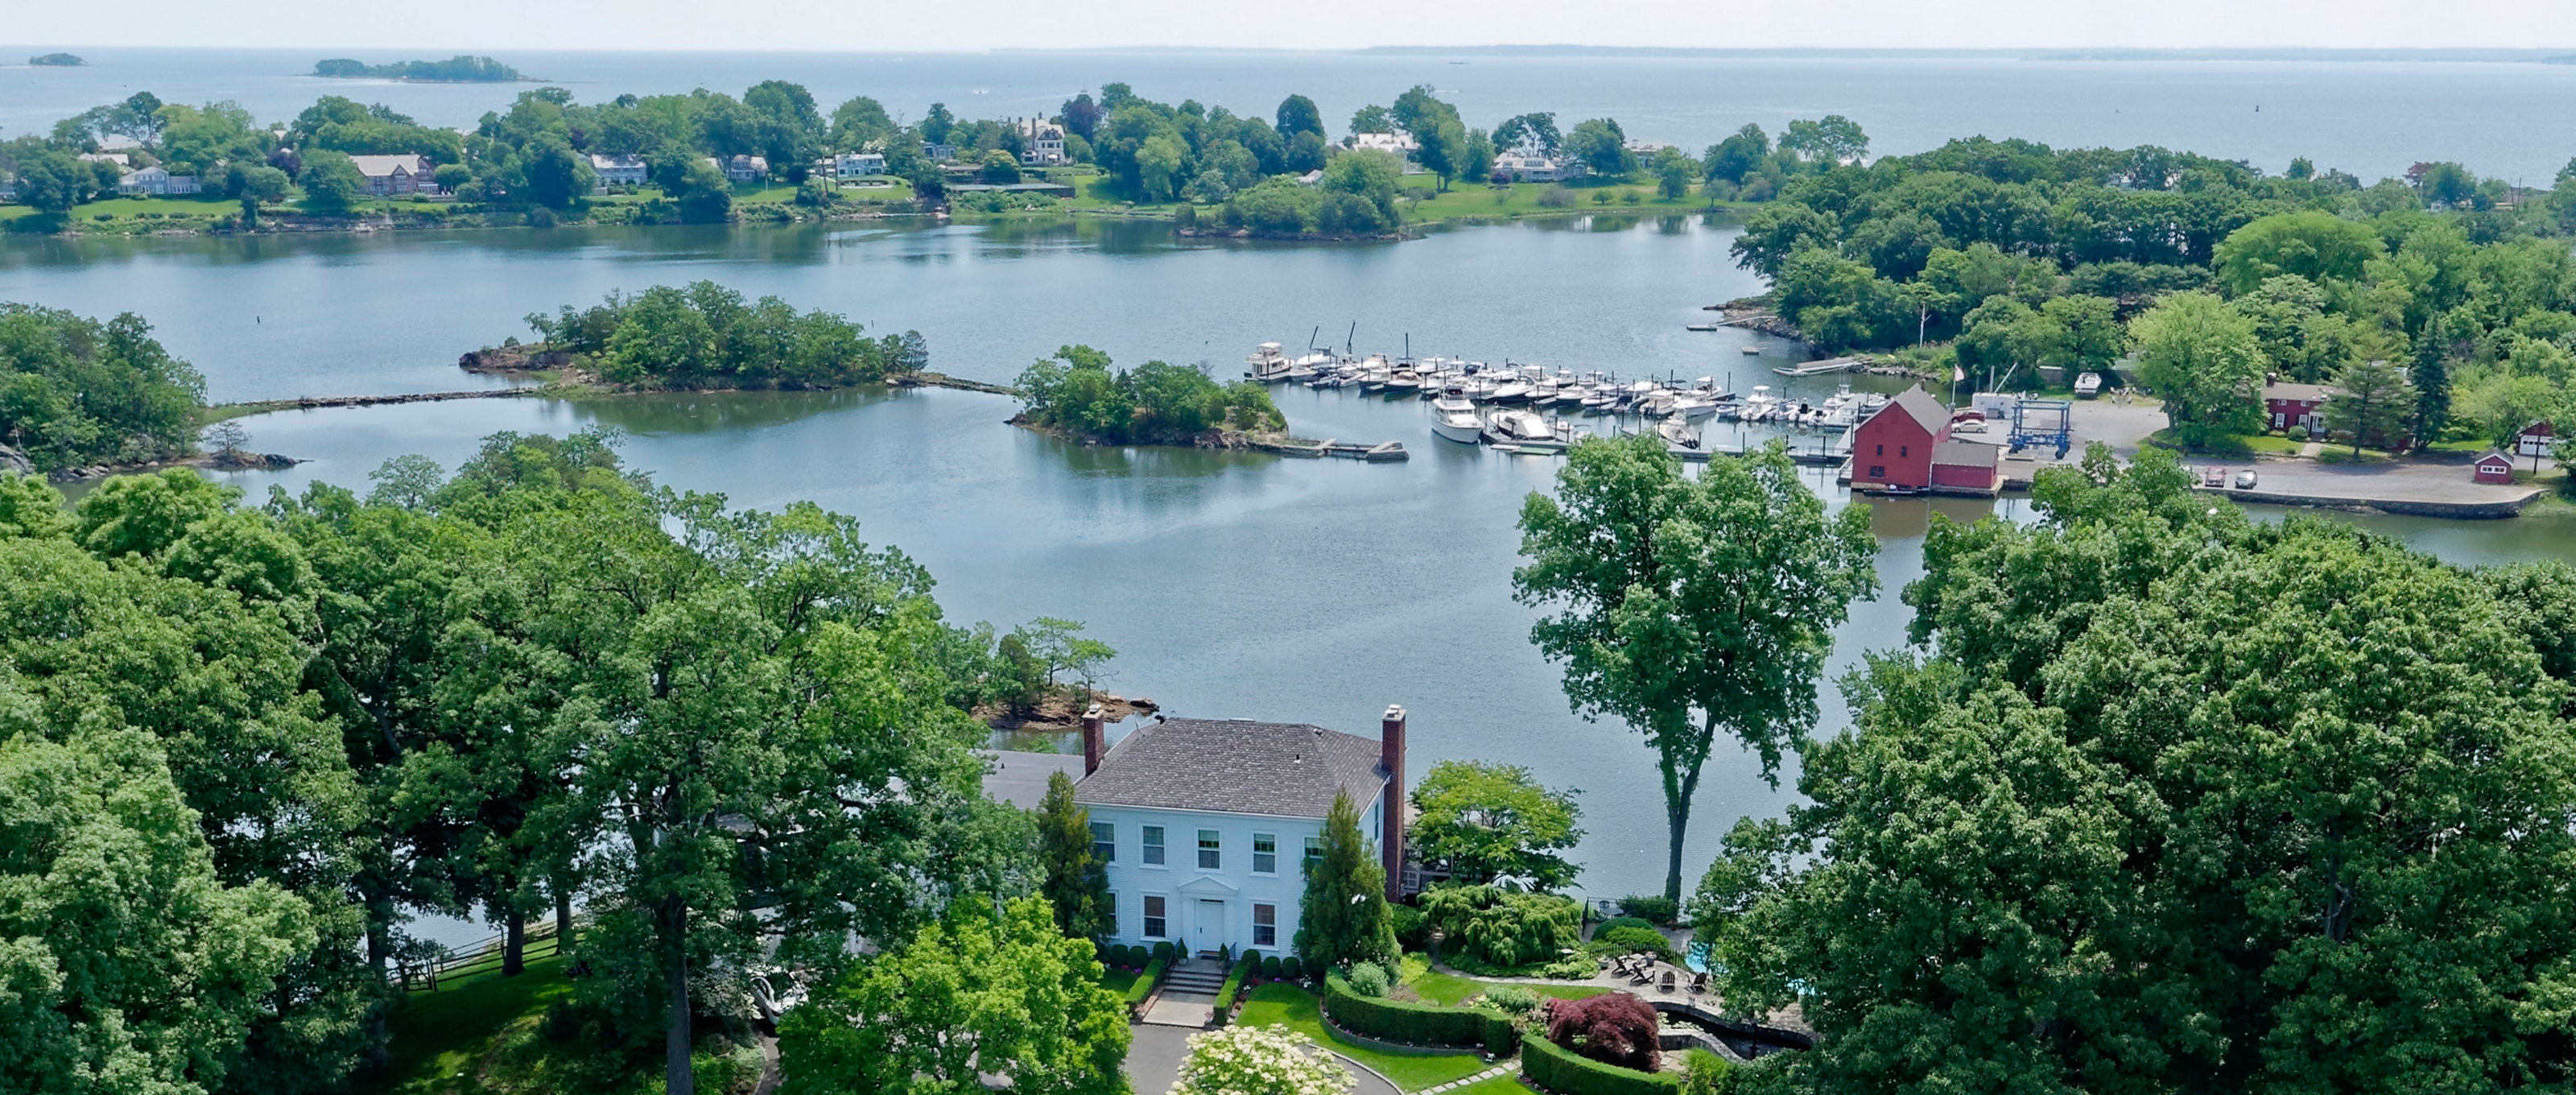 Single Family Home for Sale at The Moorings 13 Kirby Lane Rye, New York 10580 United States